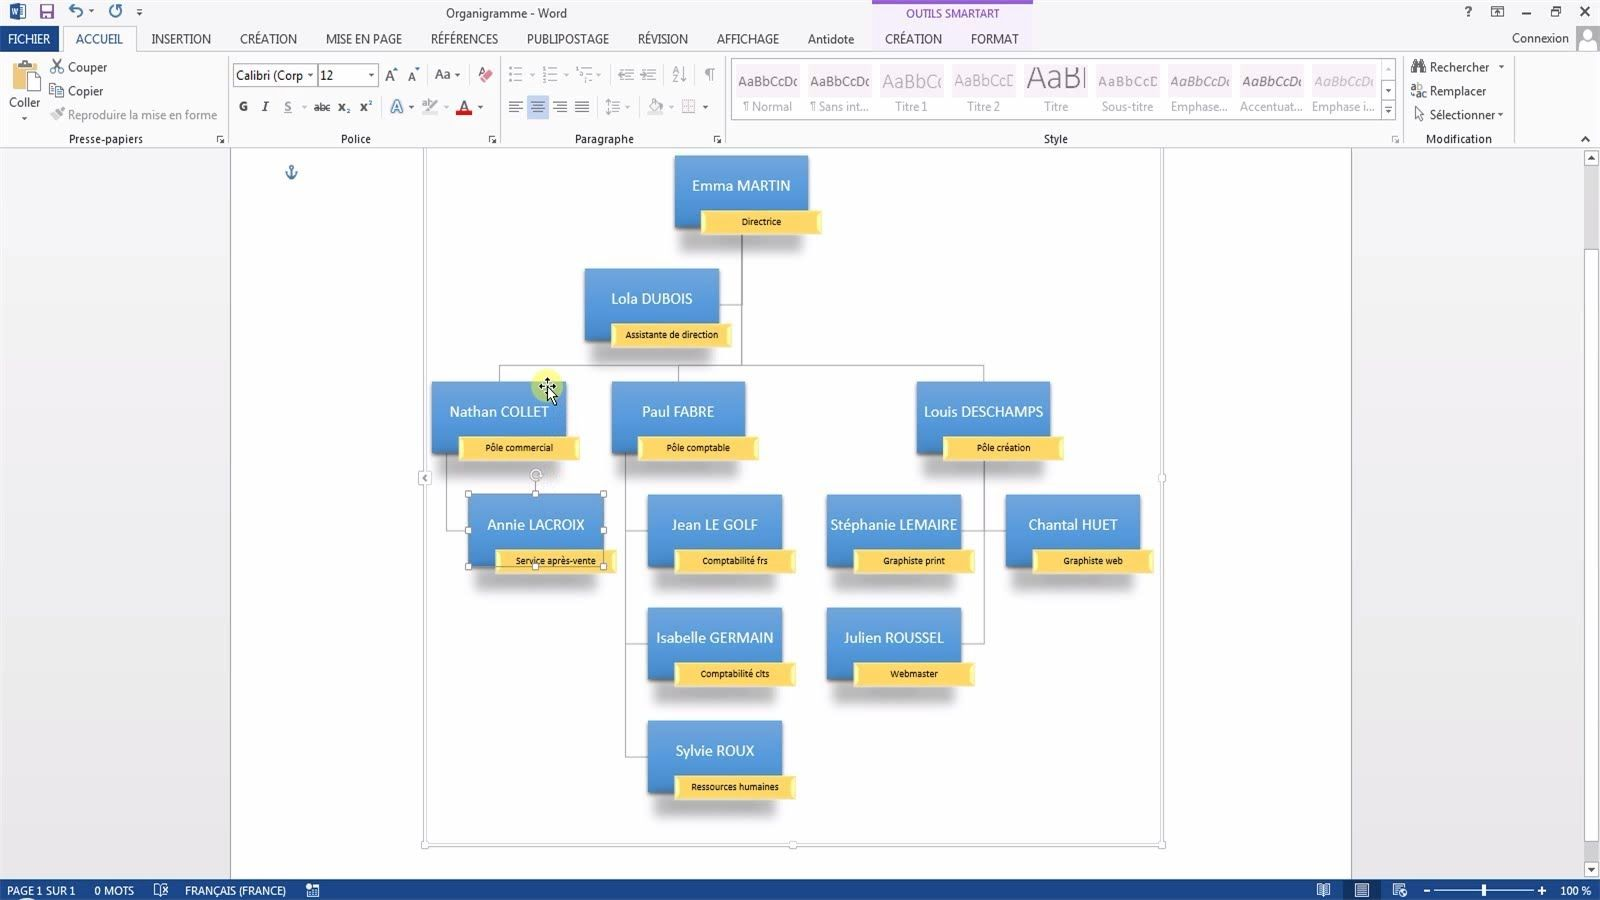 Tutoriel vid o pour apprendre cr er un organigramme word - Realiser un organigramme open office ...